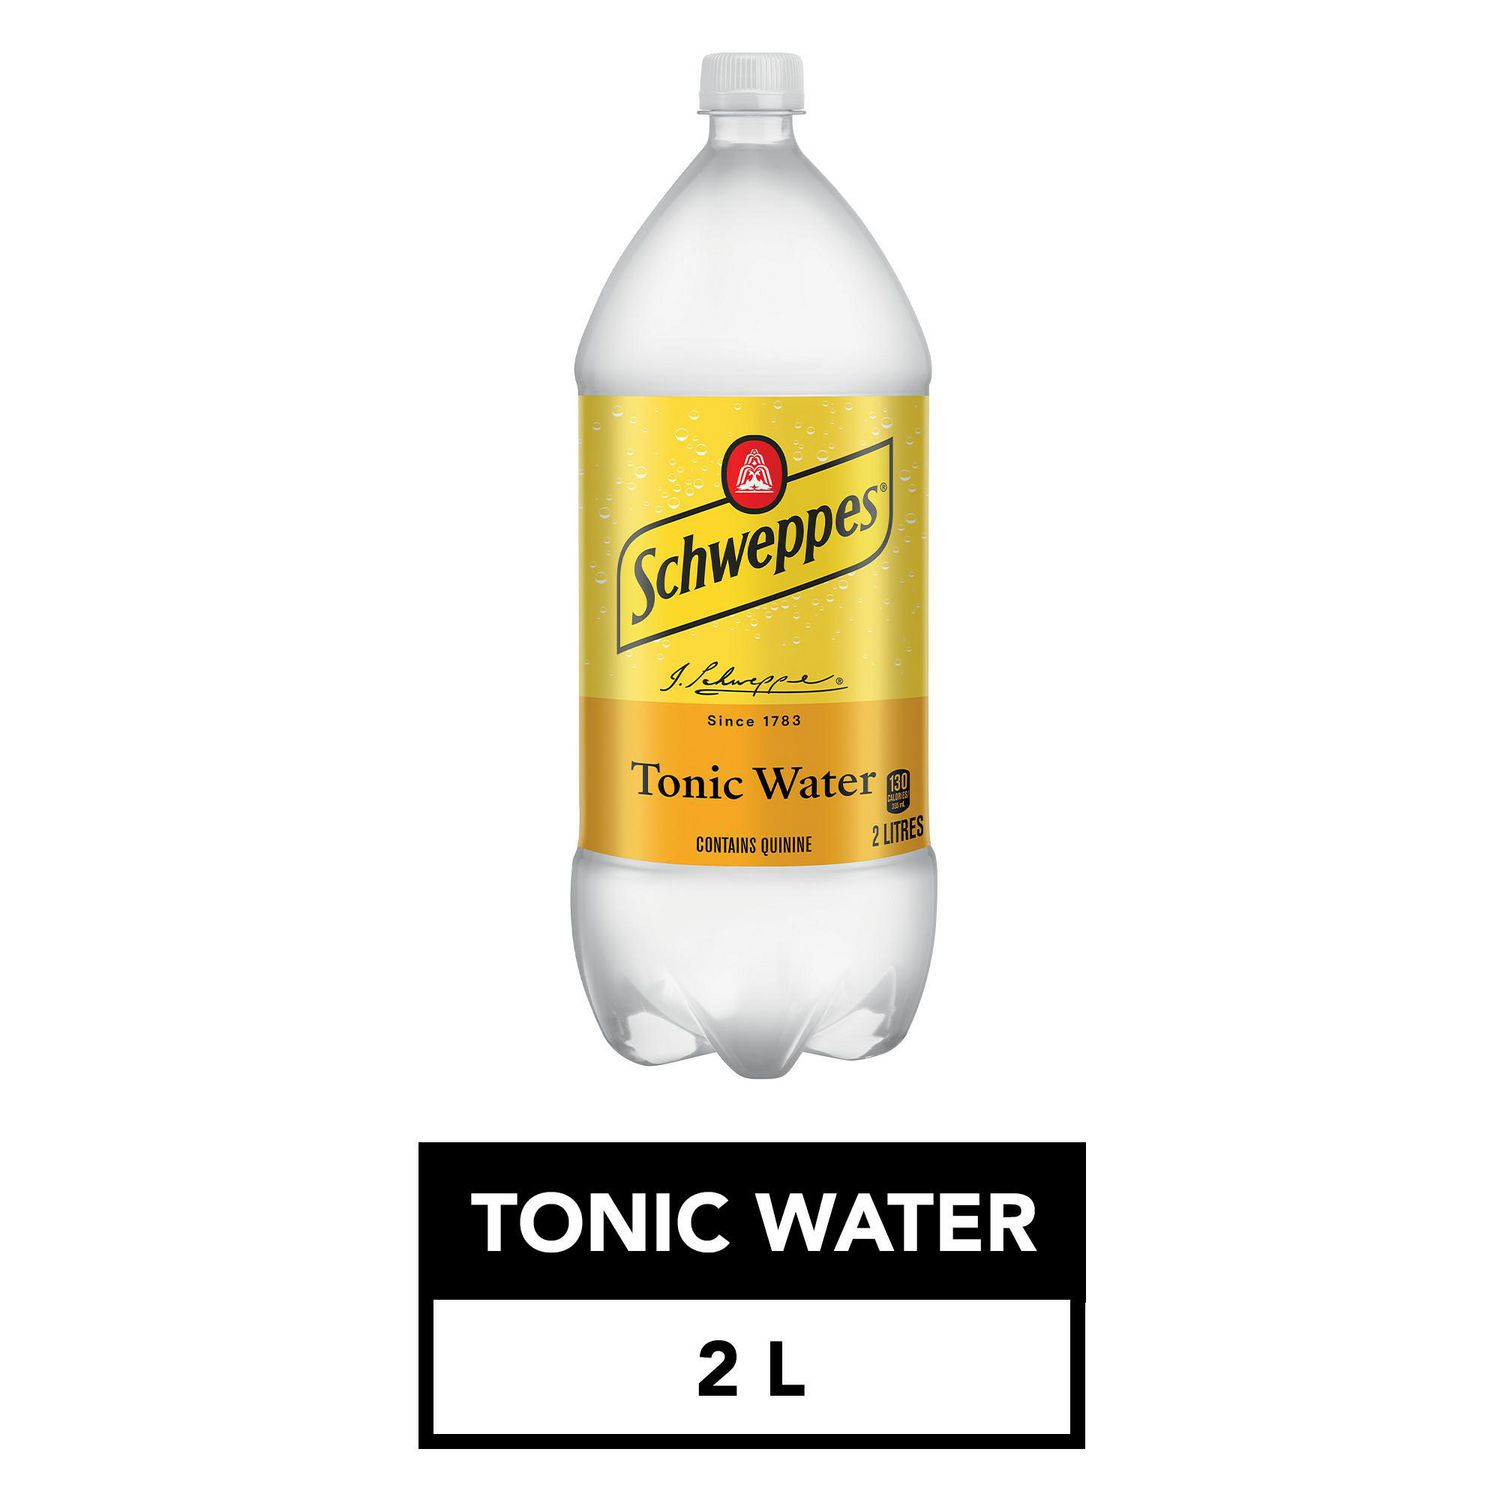 Tonic Kinine What Is Quinine In Tonic Water - Water Ionizer